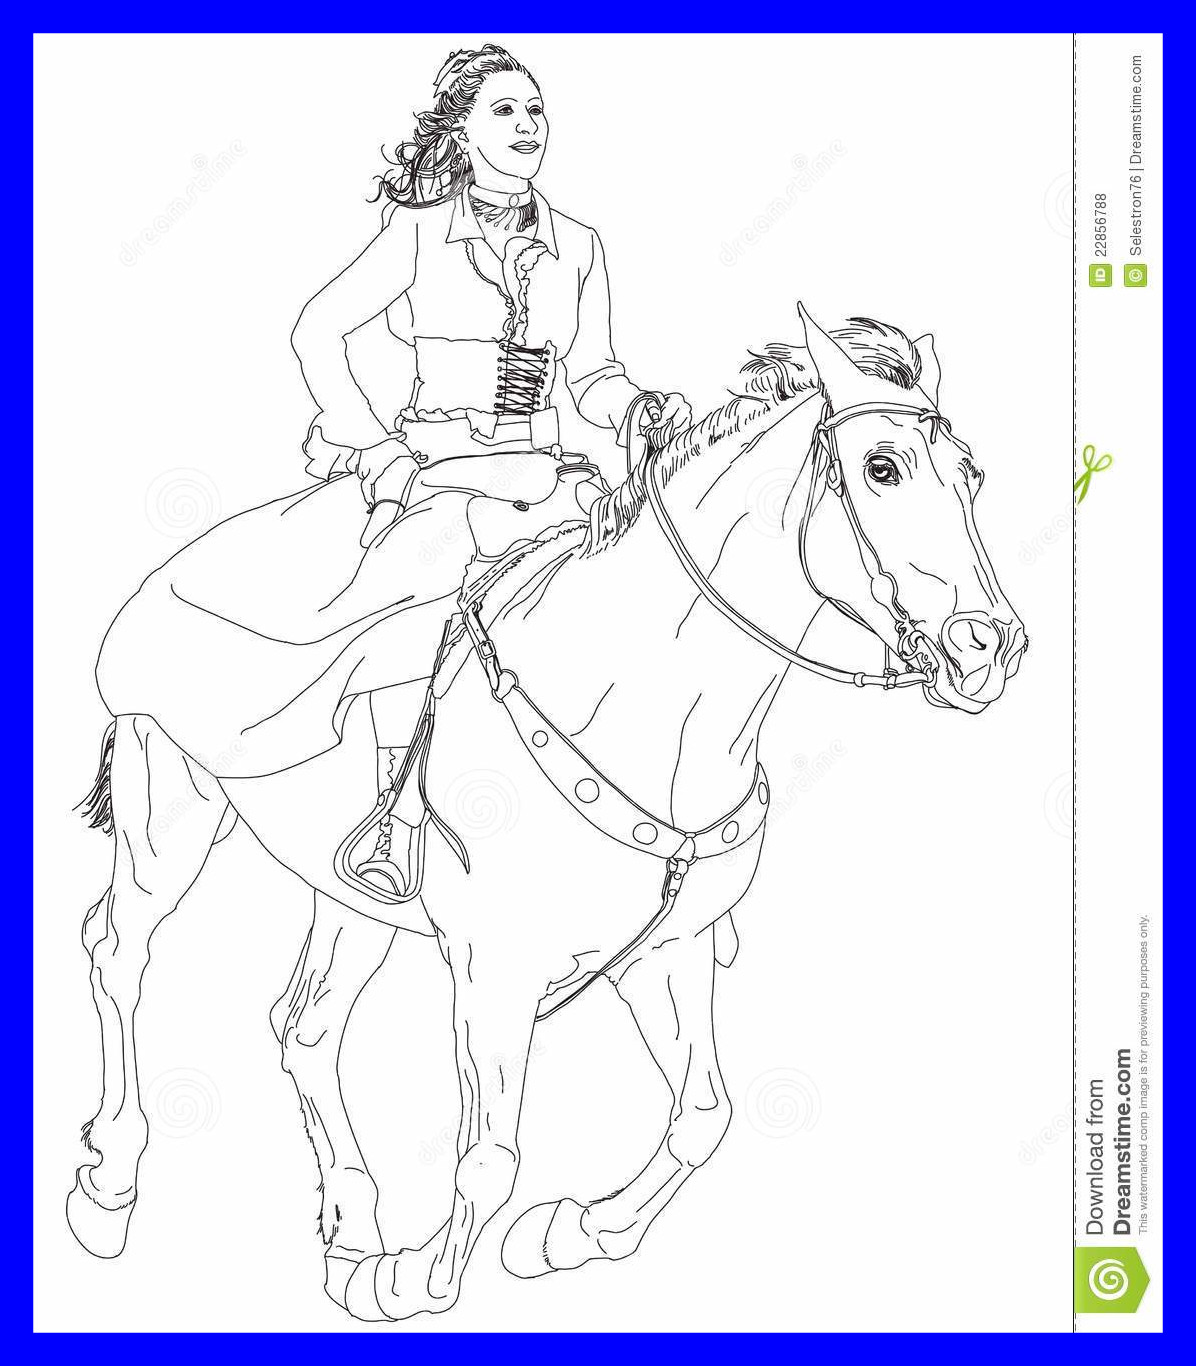 1196x1366 Incredible Girl Riding A Horse Stock Vector Illustration Of Female